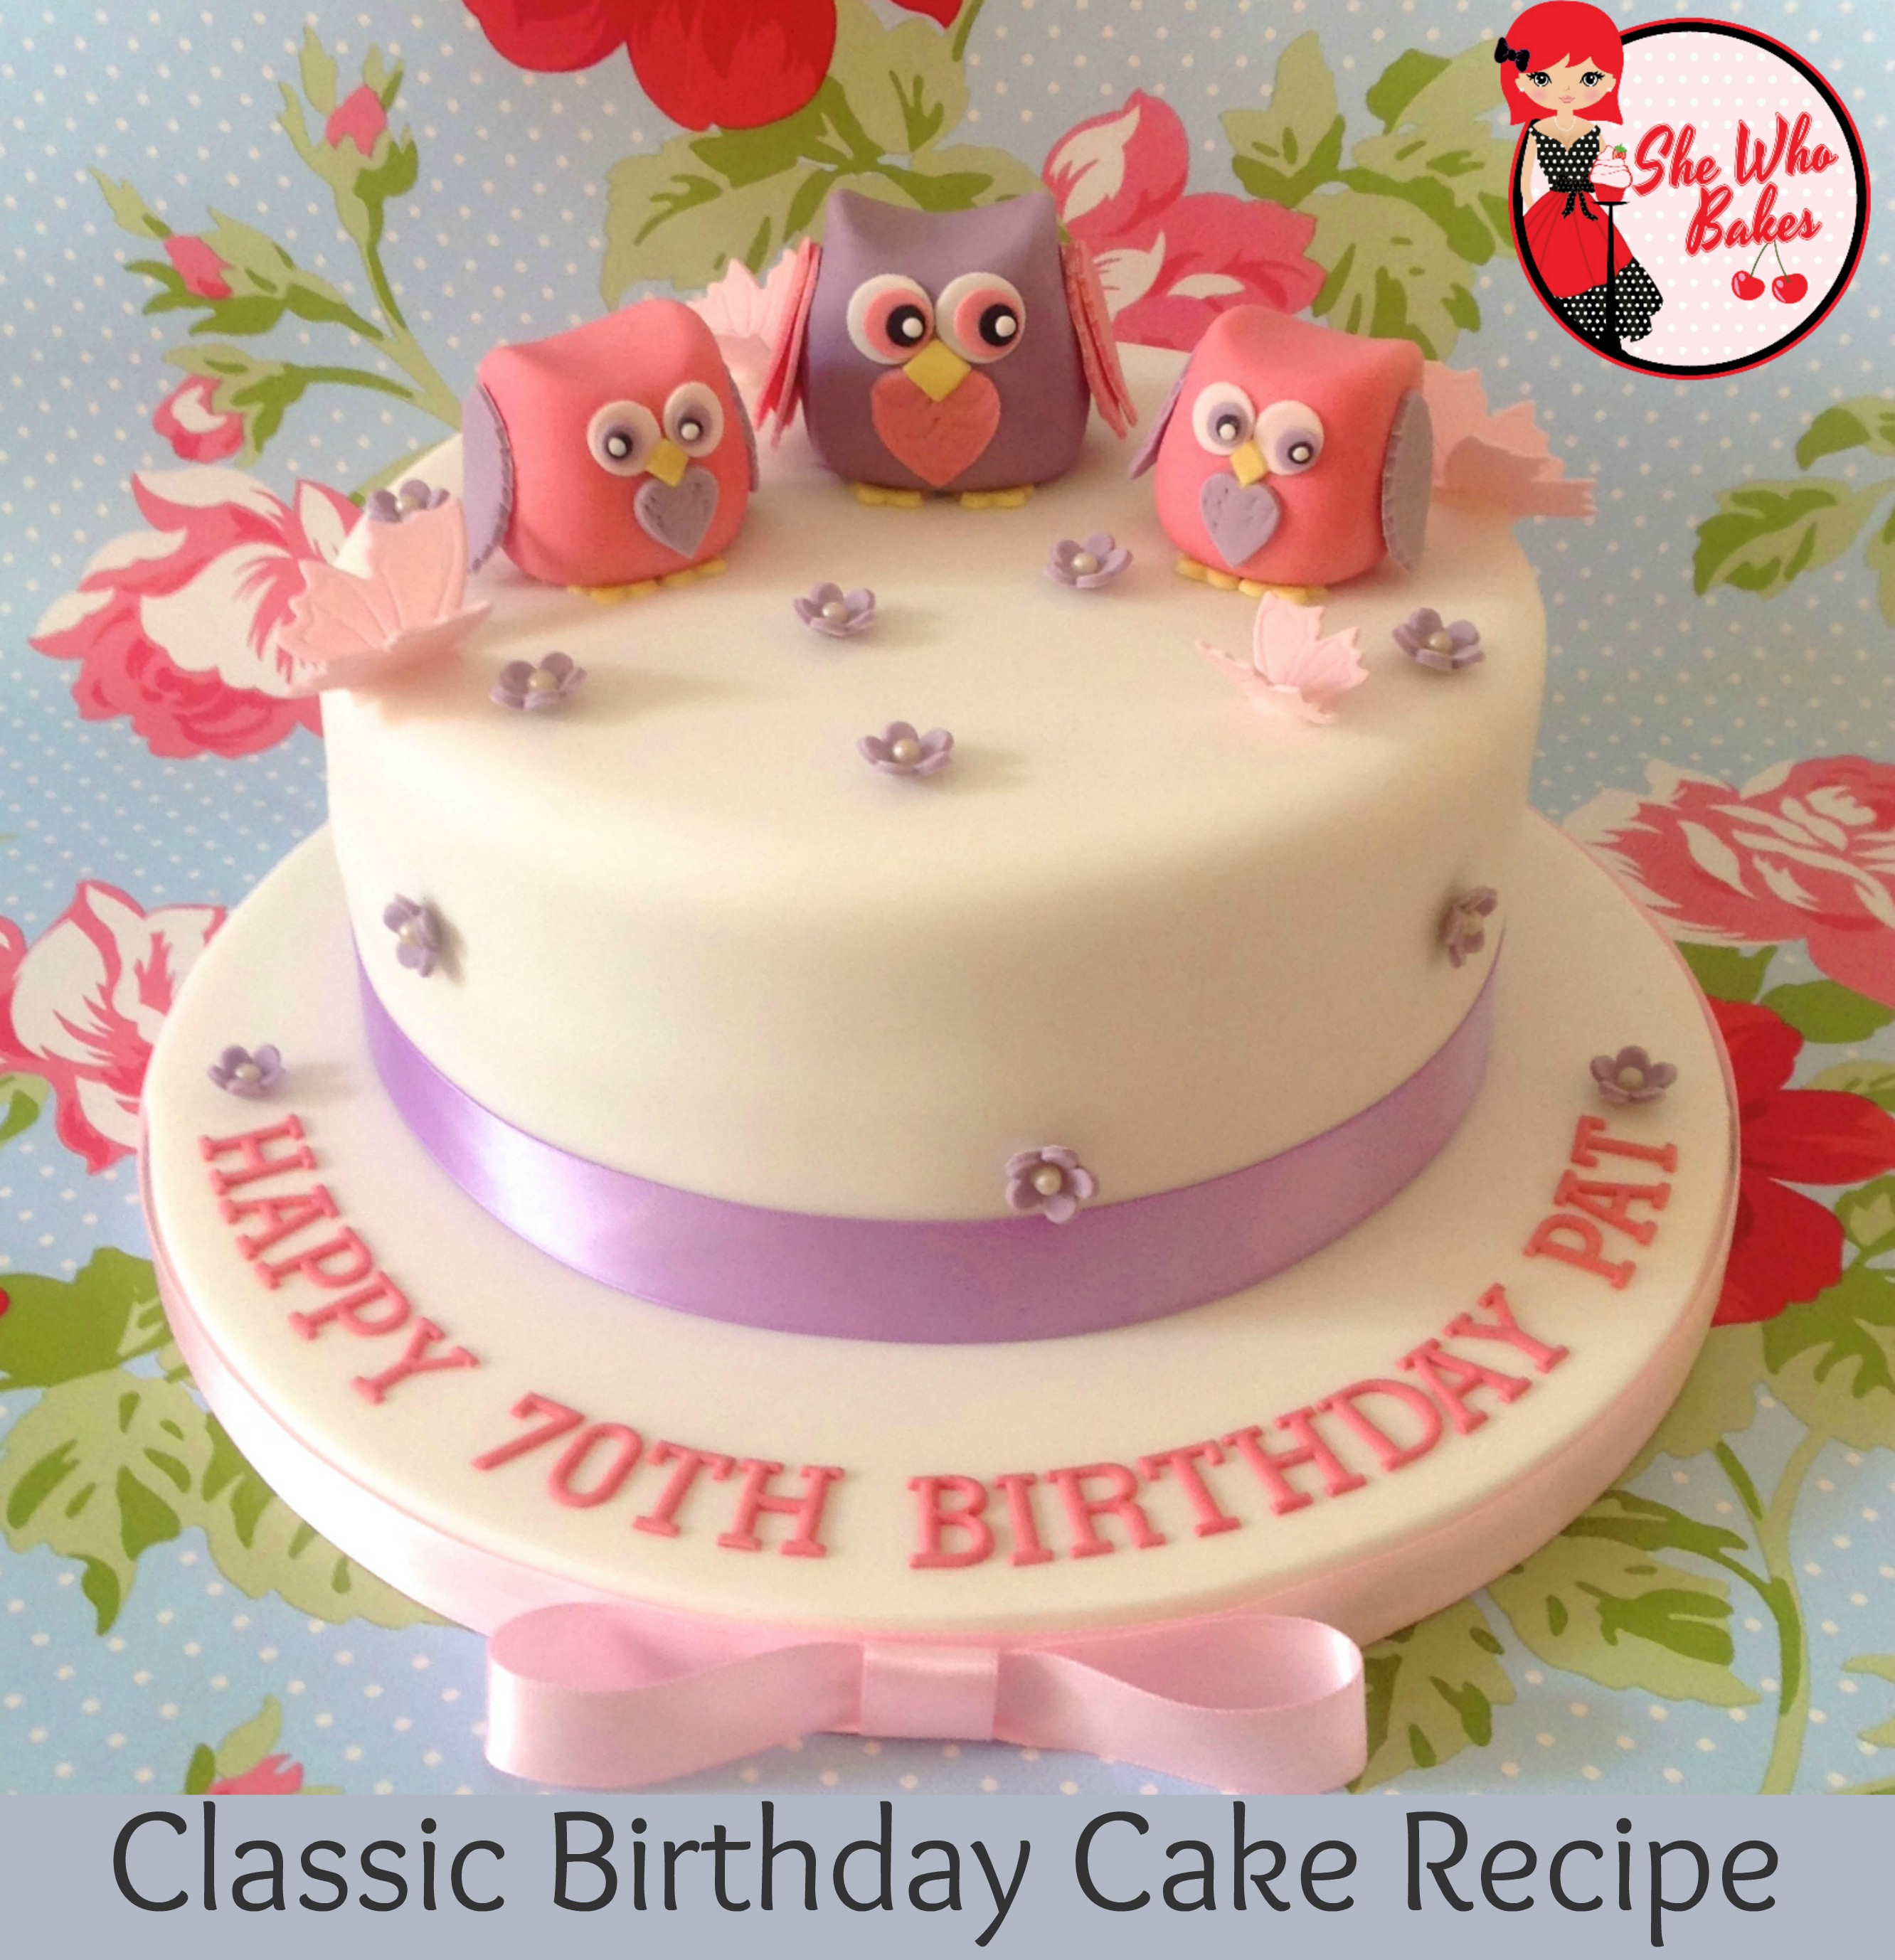 Light Birthday Cake Recipe